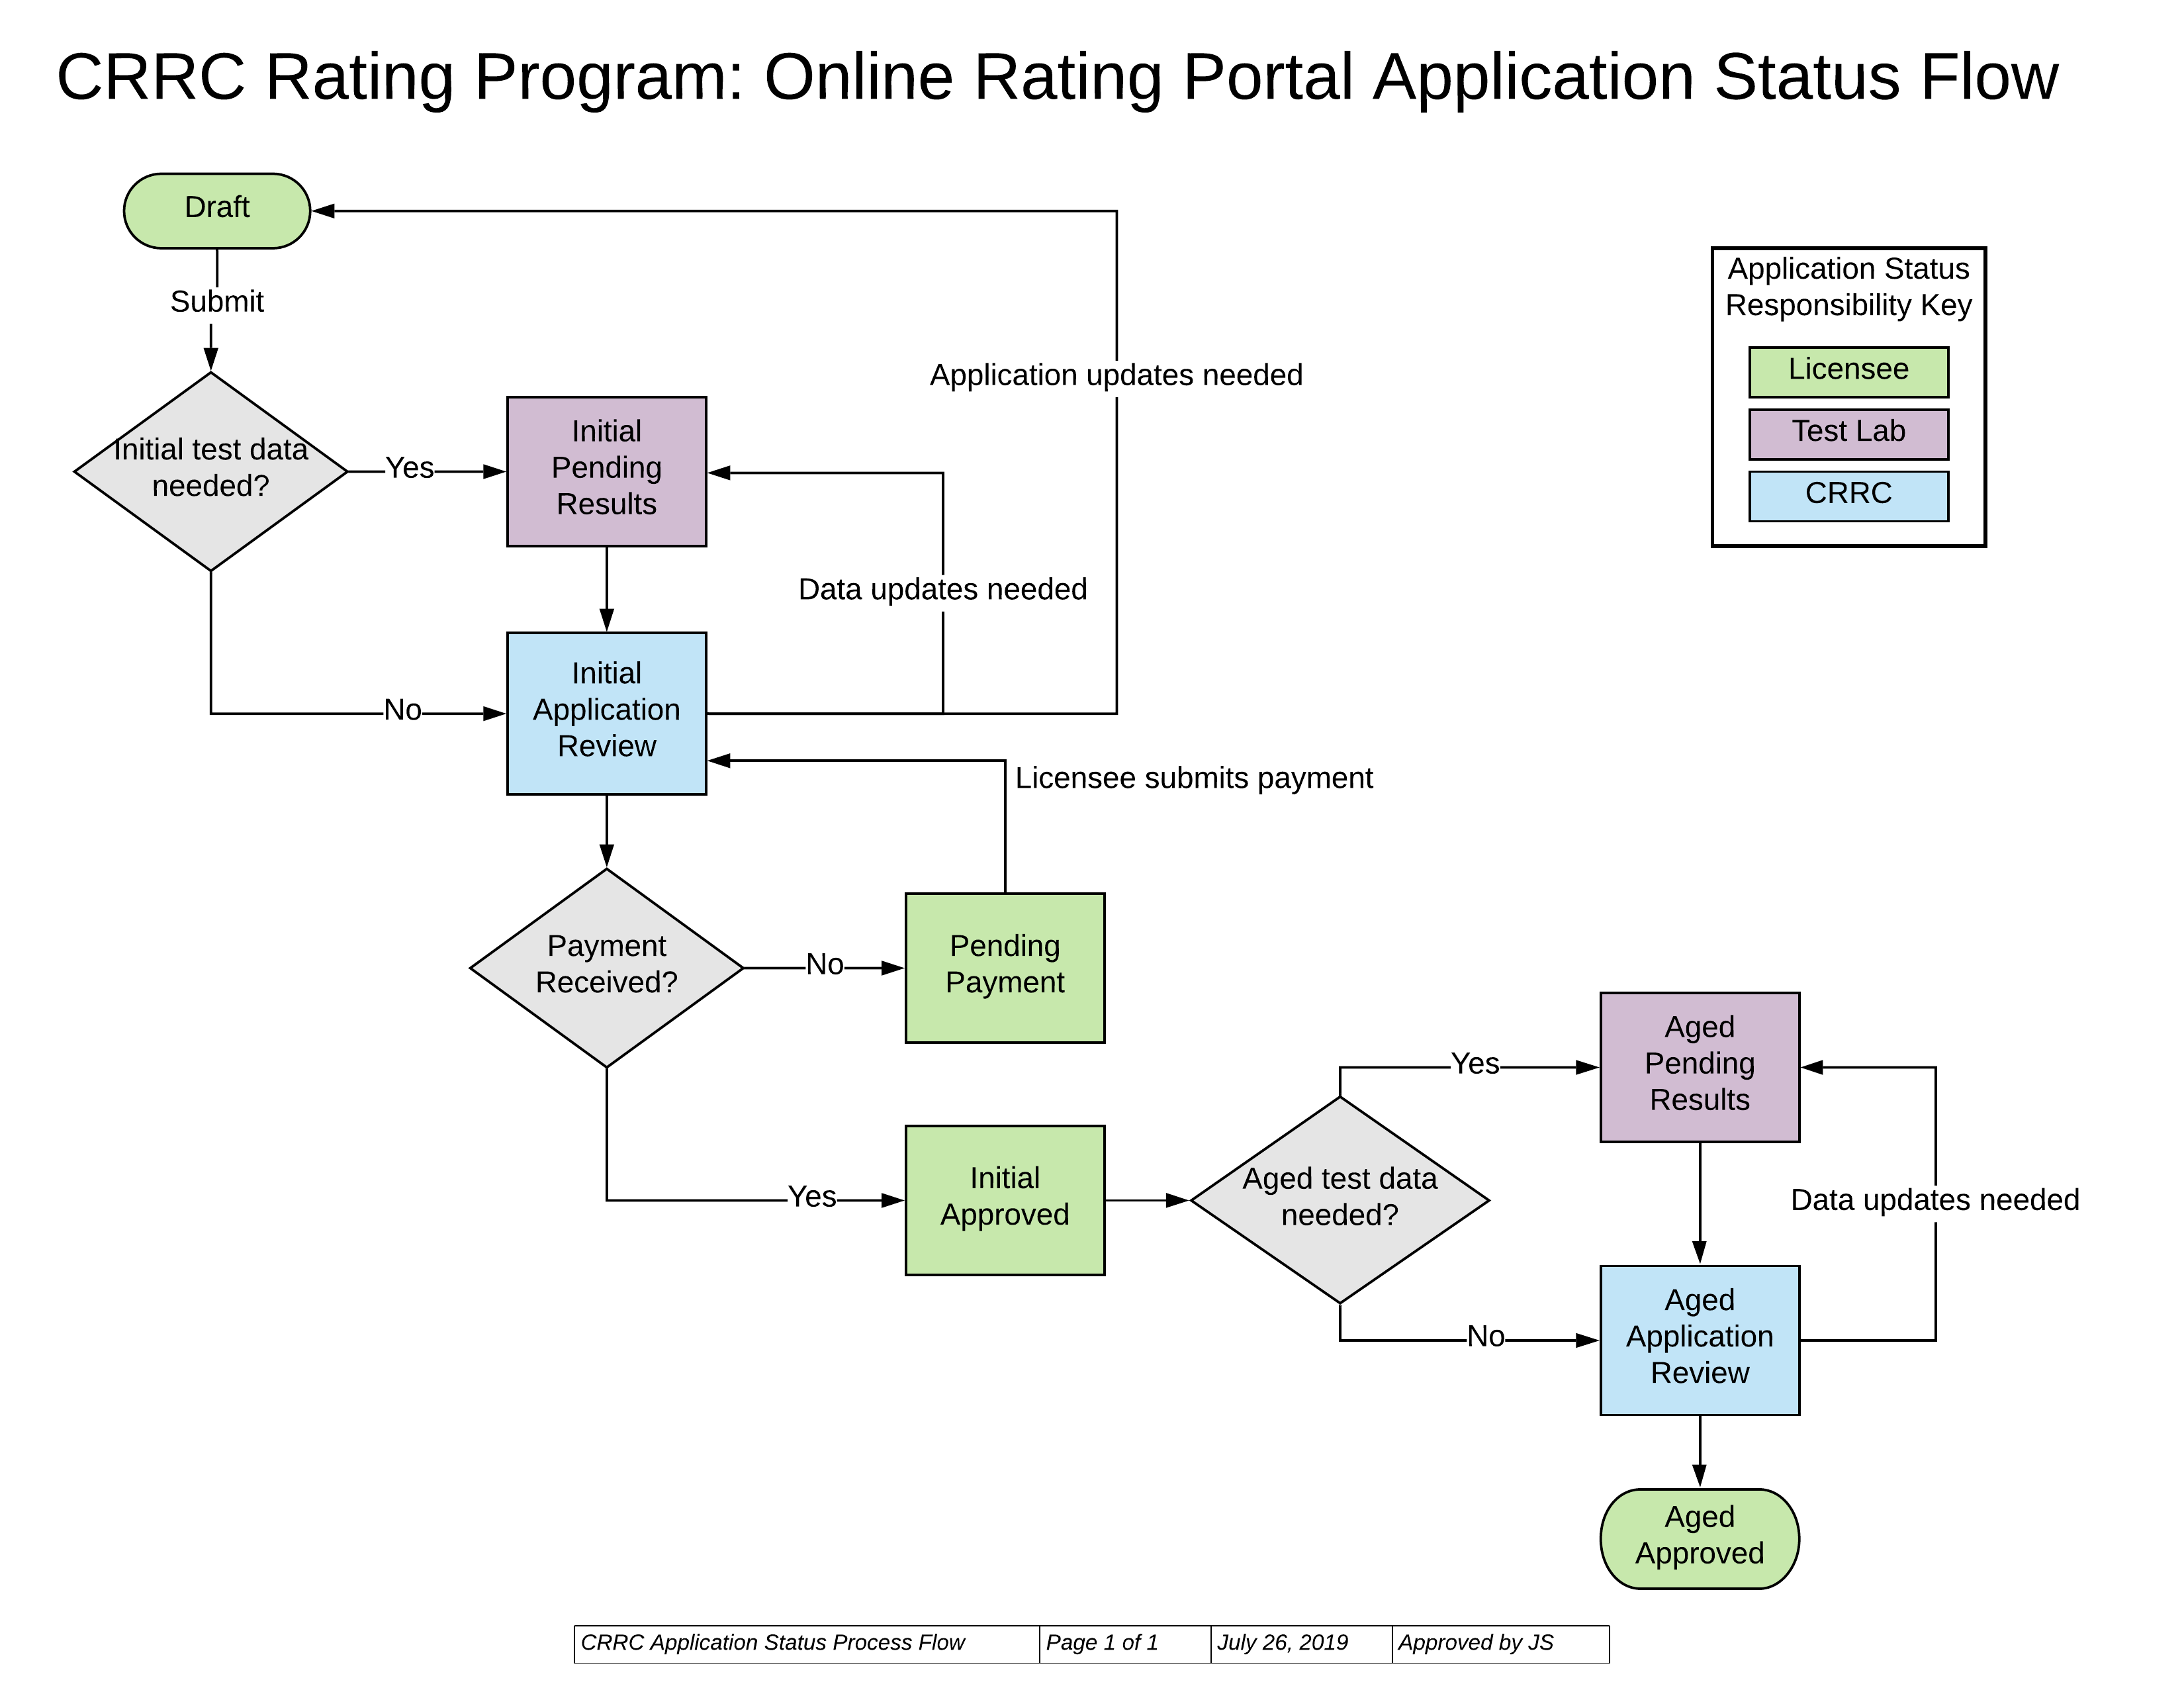 Application Status Flow